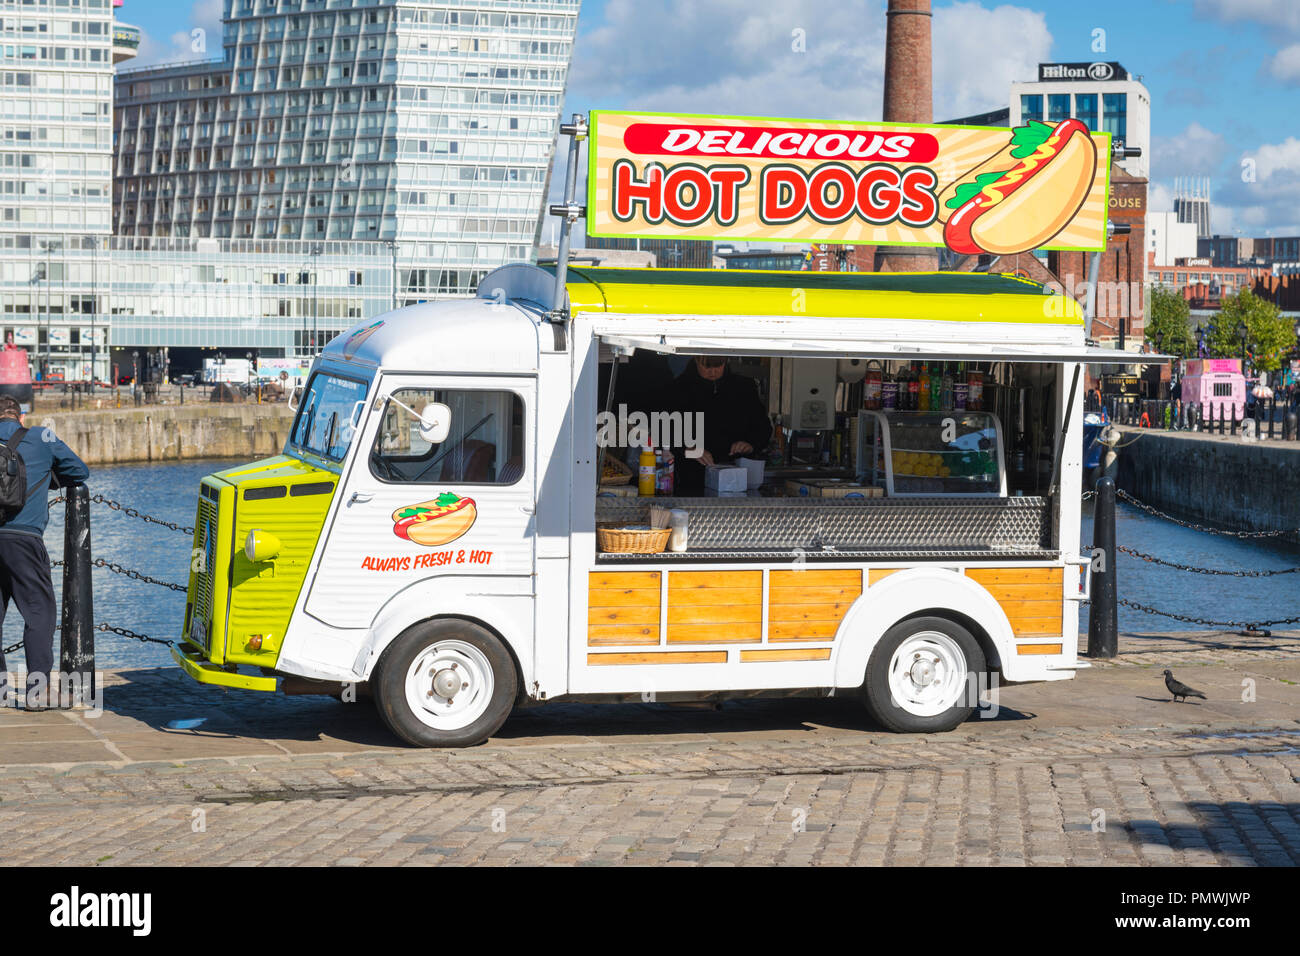 Liverpool Canning Dock Hot Dog Dogs Citroen van Always Fresh & Hot snack bar cafe soft drinks condiments big sign Delicious - Stock Image